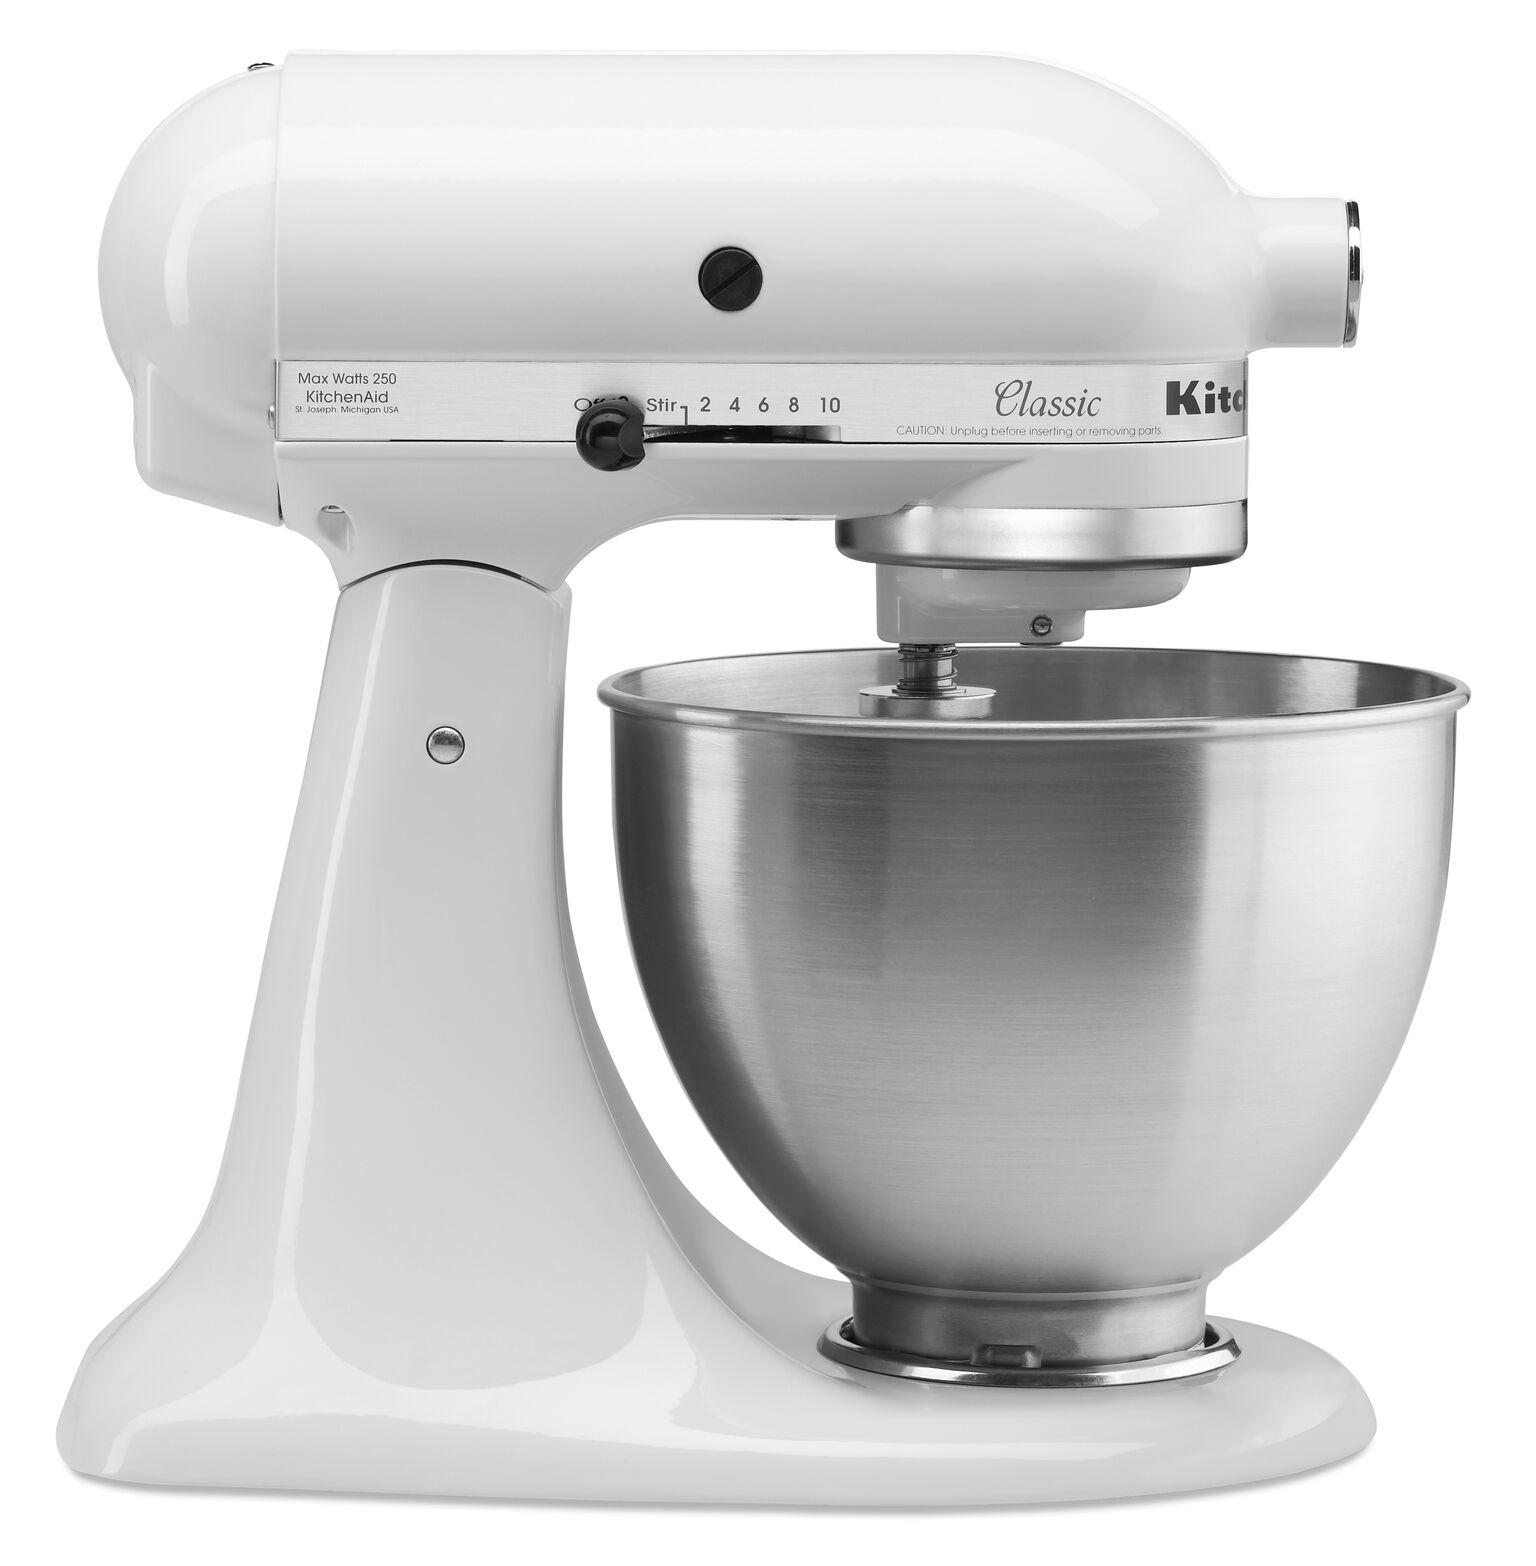 Wonderful KitchenAid Classic Series 4.5 Quart Tilt Head Stand Mixer, White (K45SSWH)